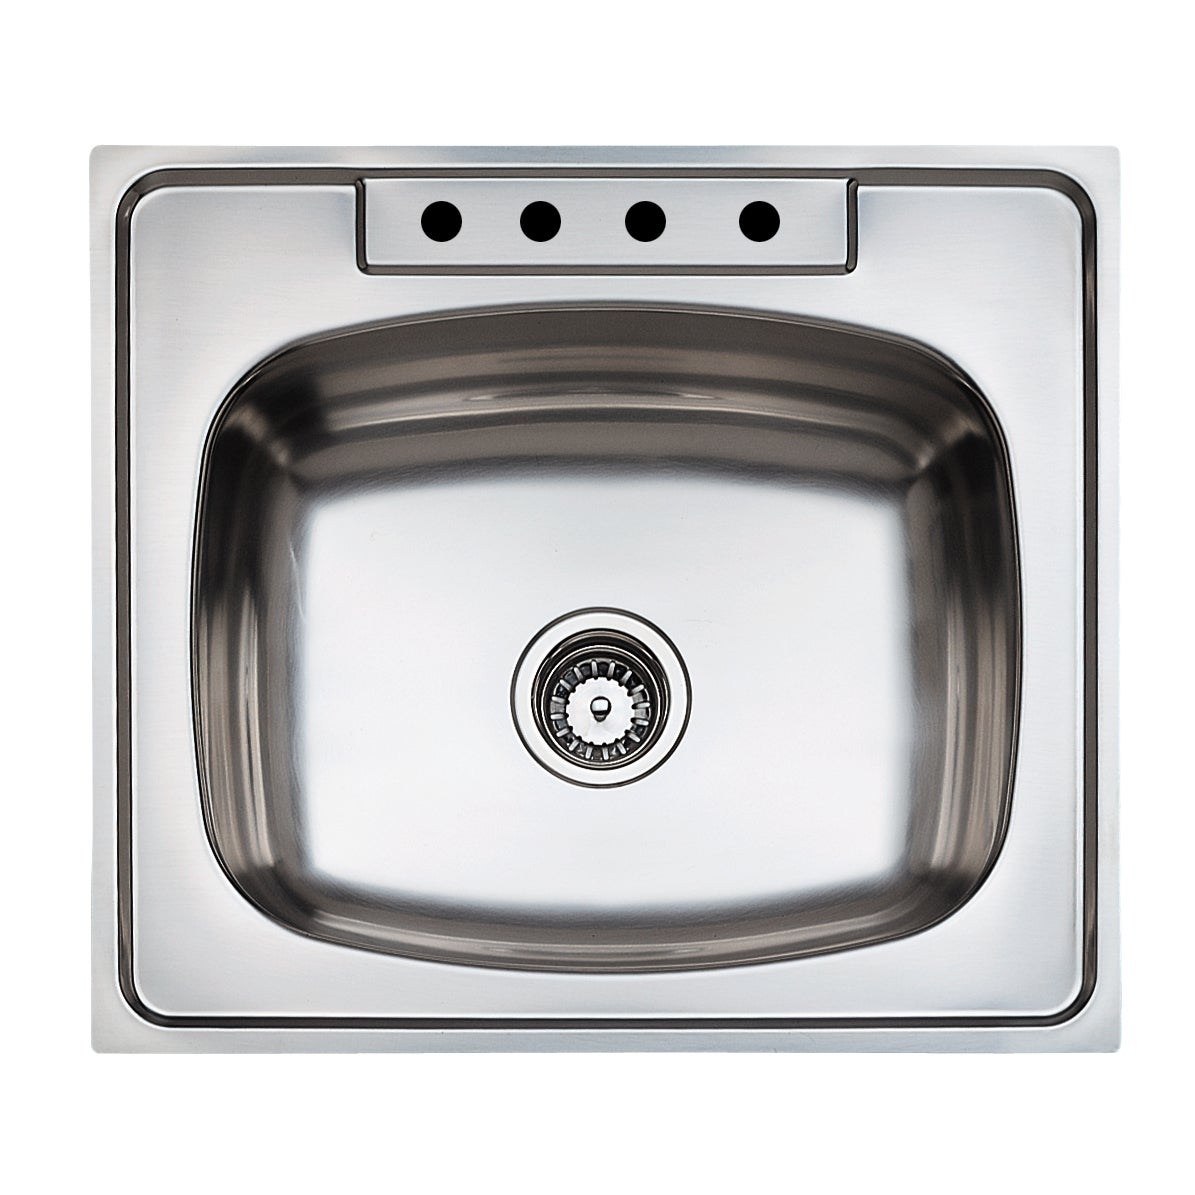 Teka Stainless Steel 25 Inch Top Mount Single Bowl Kitchen Sink